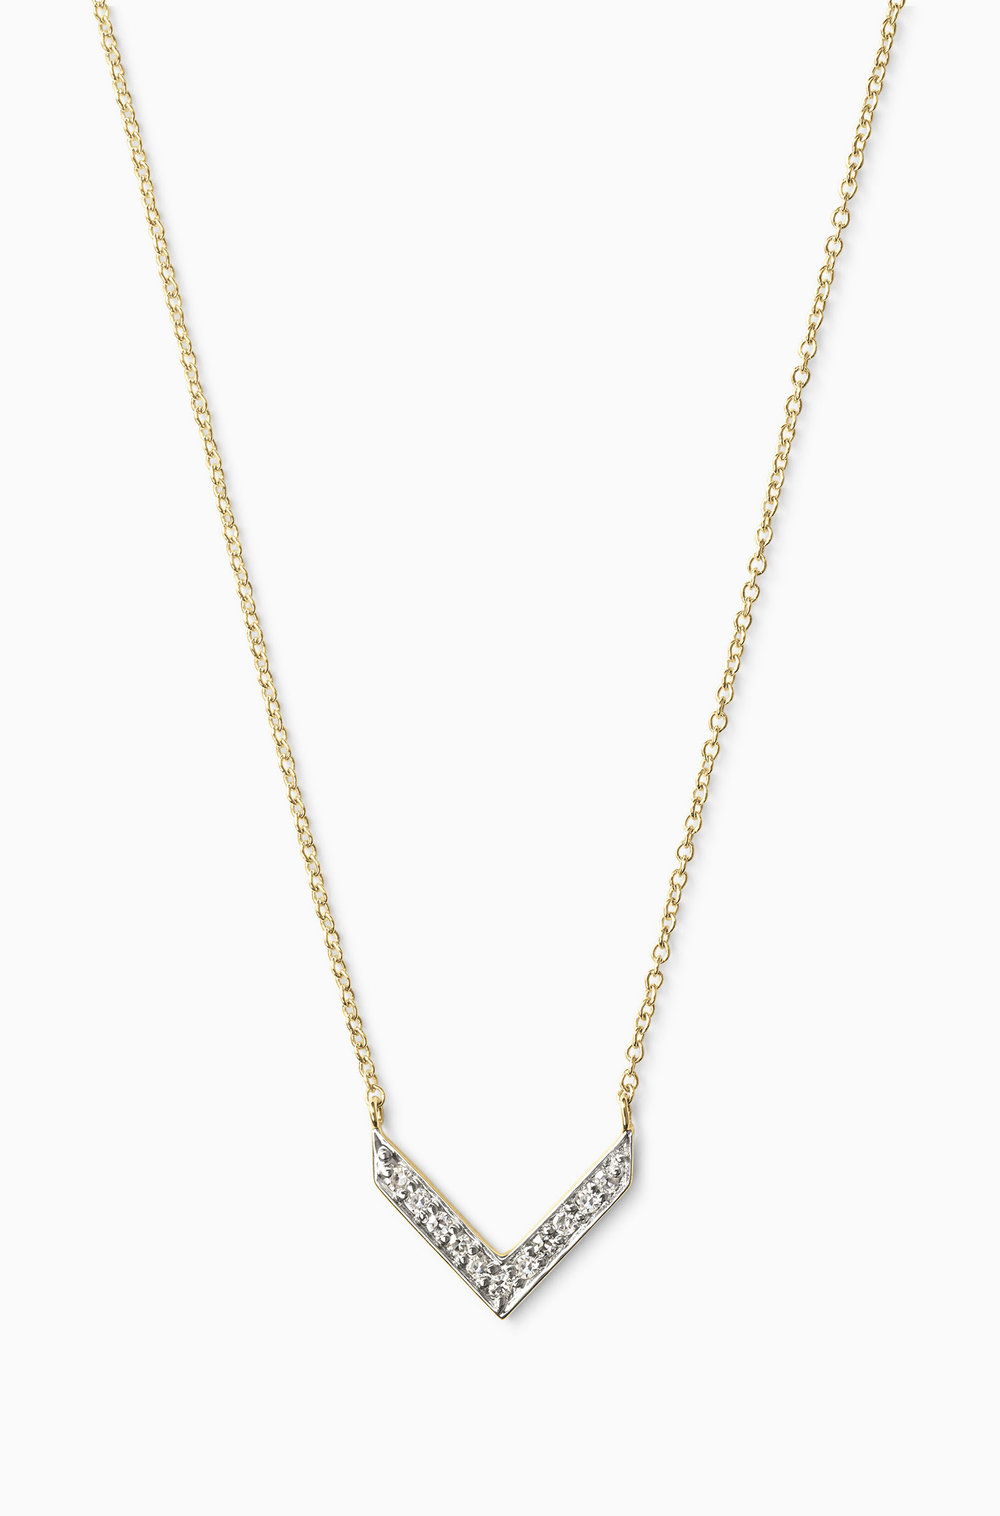 Covet Intention  Necklace $298